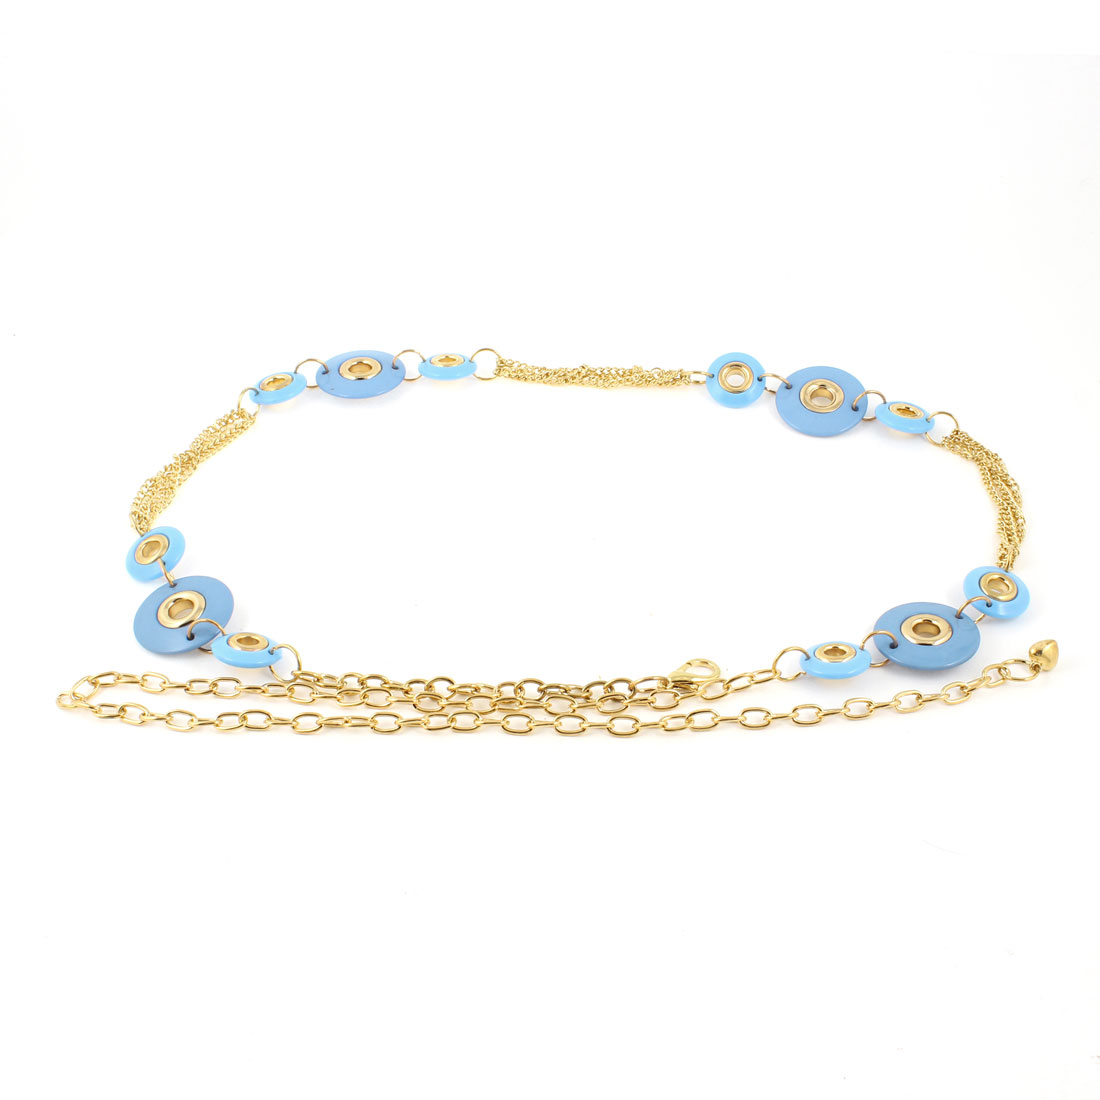 Ladies Round Beads Decor Adjustable Metal Chains Belt Waist Chain Gold Tone Blue